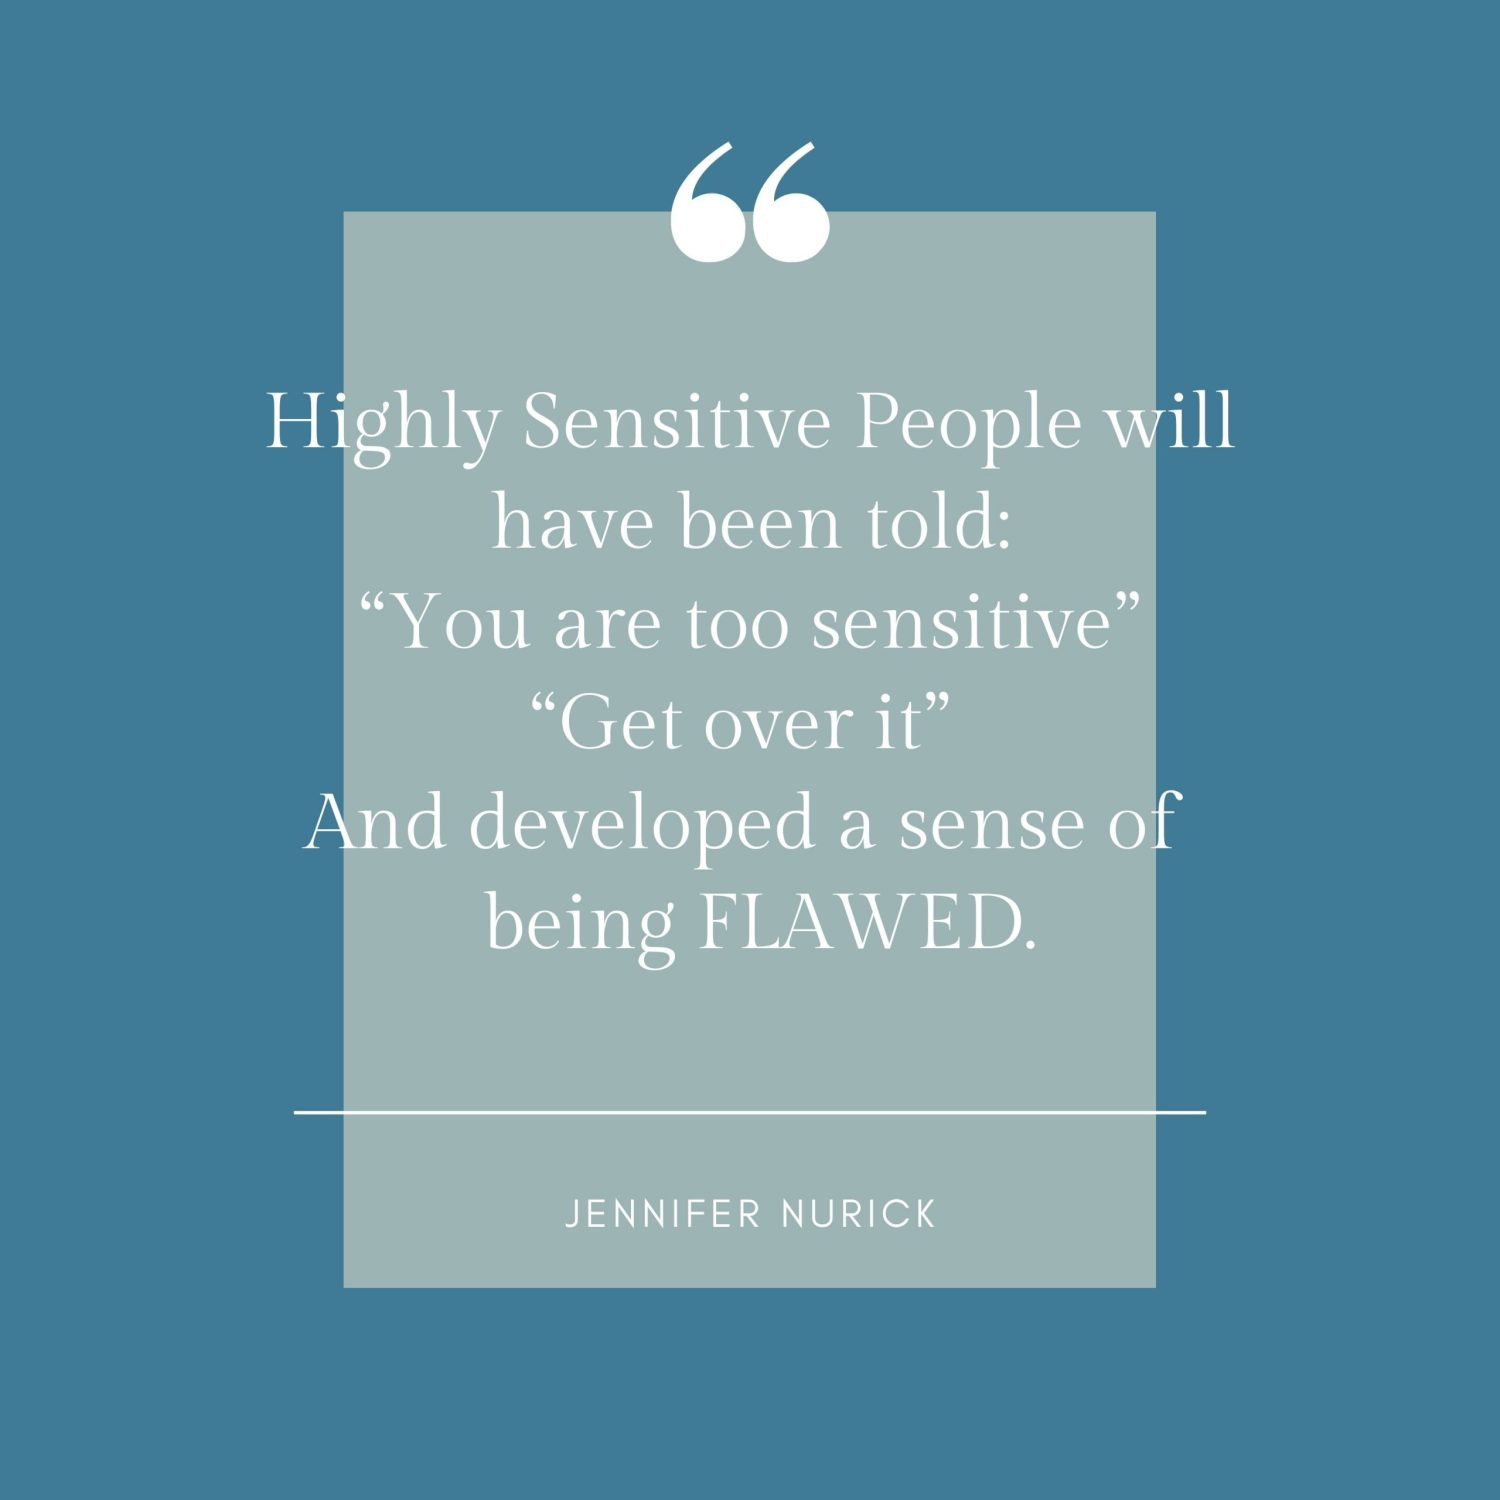 Highly Sensitive People Often Feel Flawed